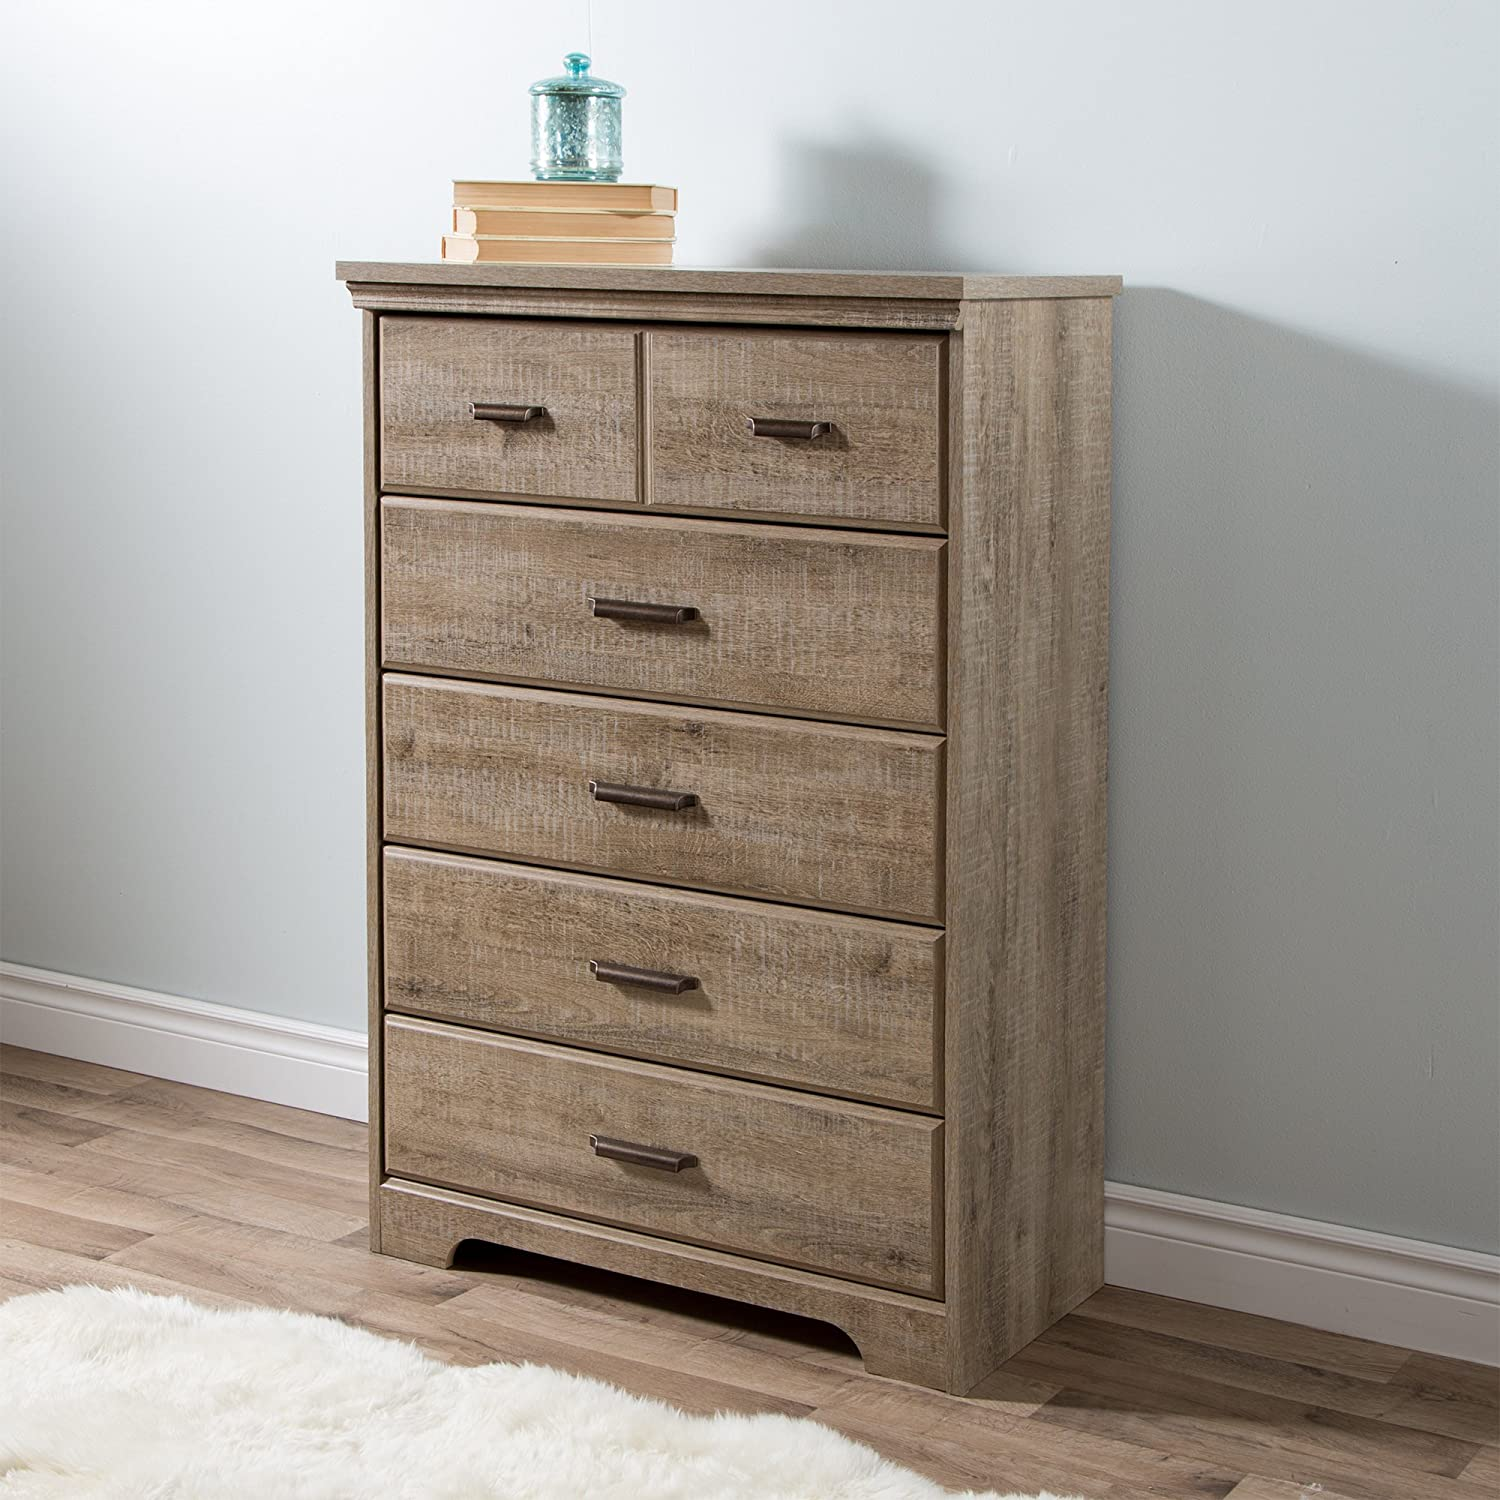 south shore furniture versa drawer chest weathered oak amazon  - south shore furniture versa drawer chest weathered oak amazonca home kitchen